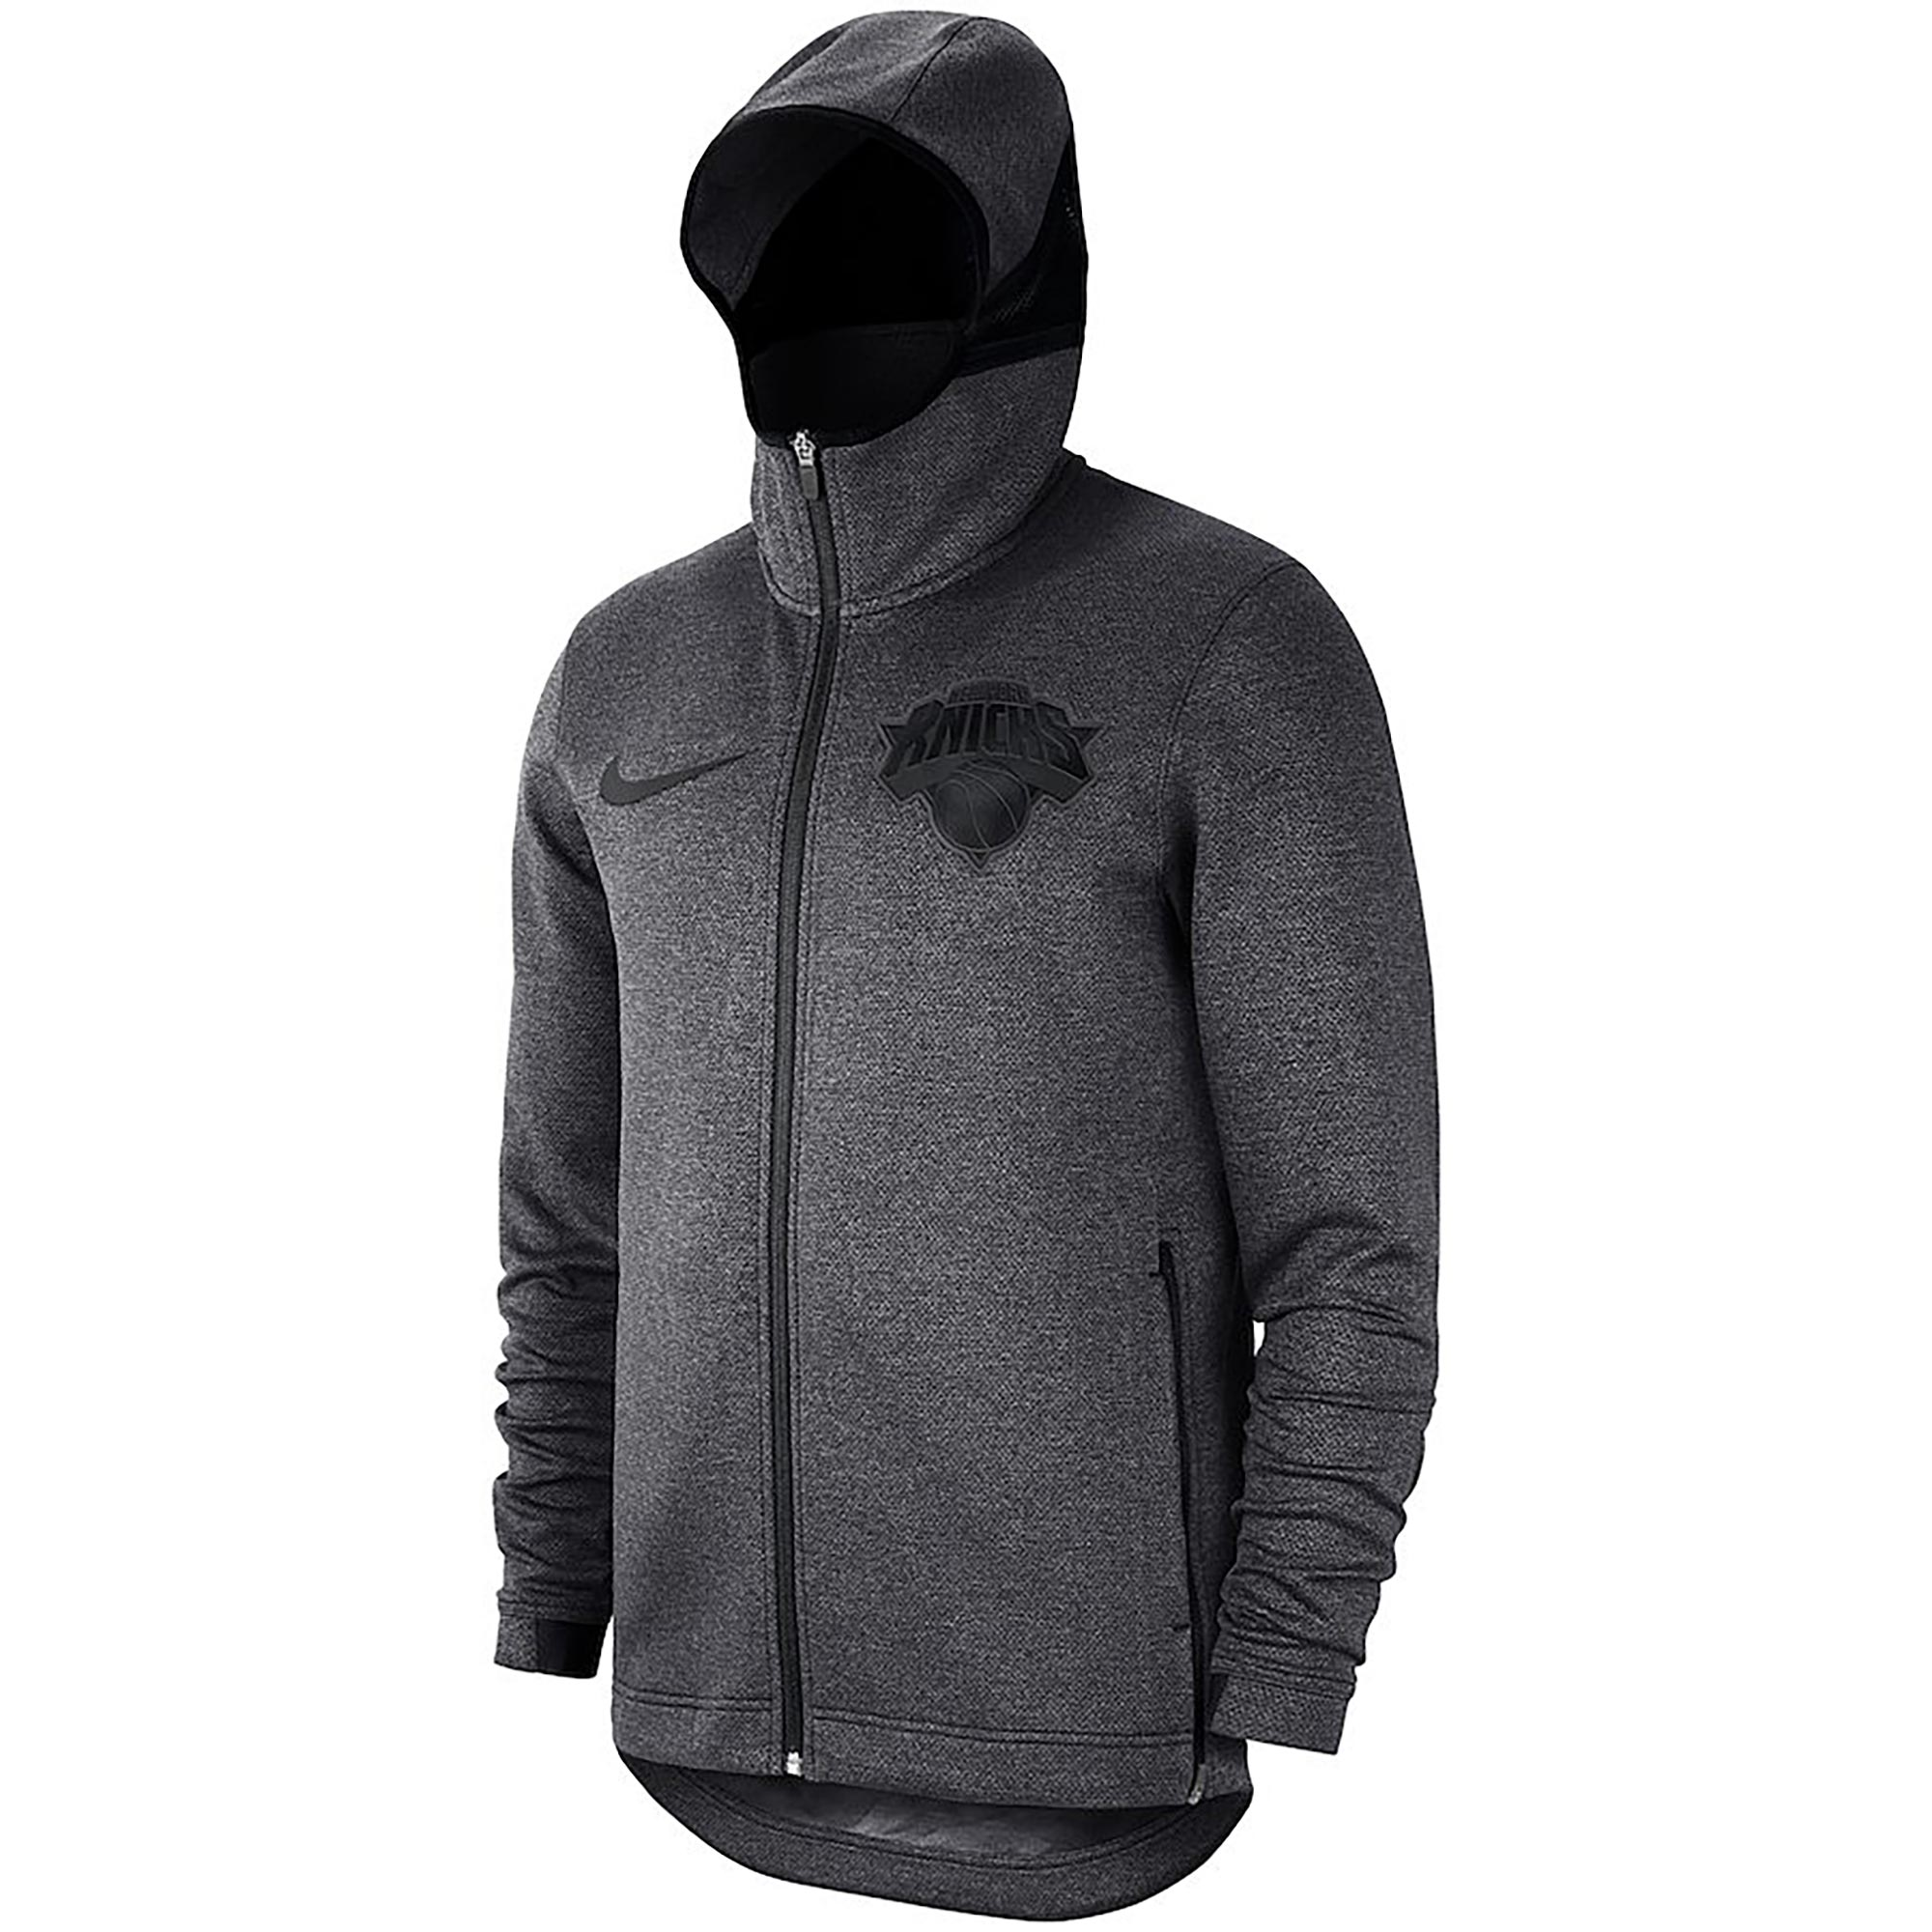 Outerstuff EMEA Ltd / New York Knicks Nike Showtime Therma Flex Hoodie - Youth